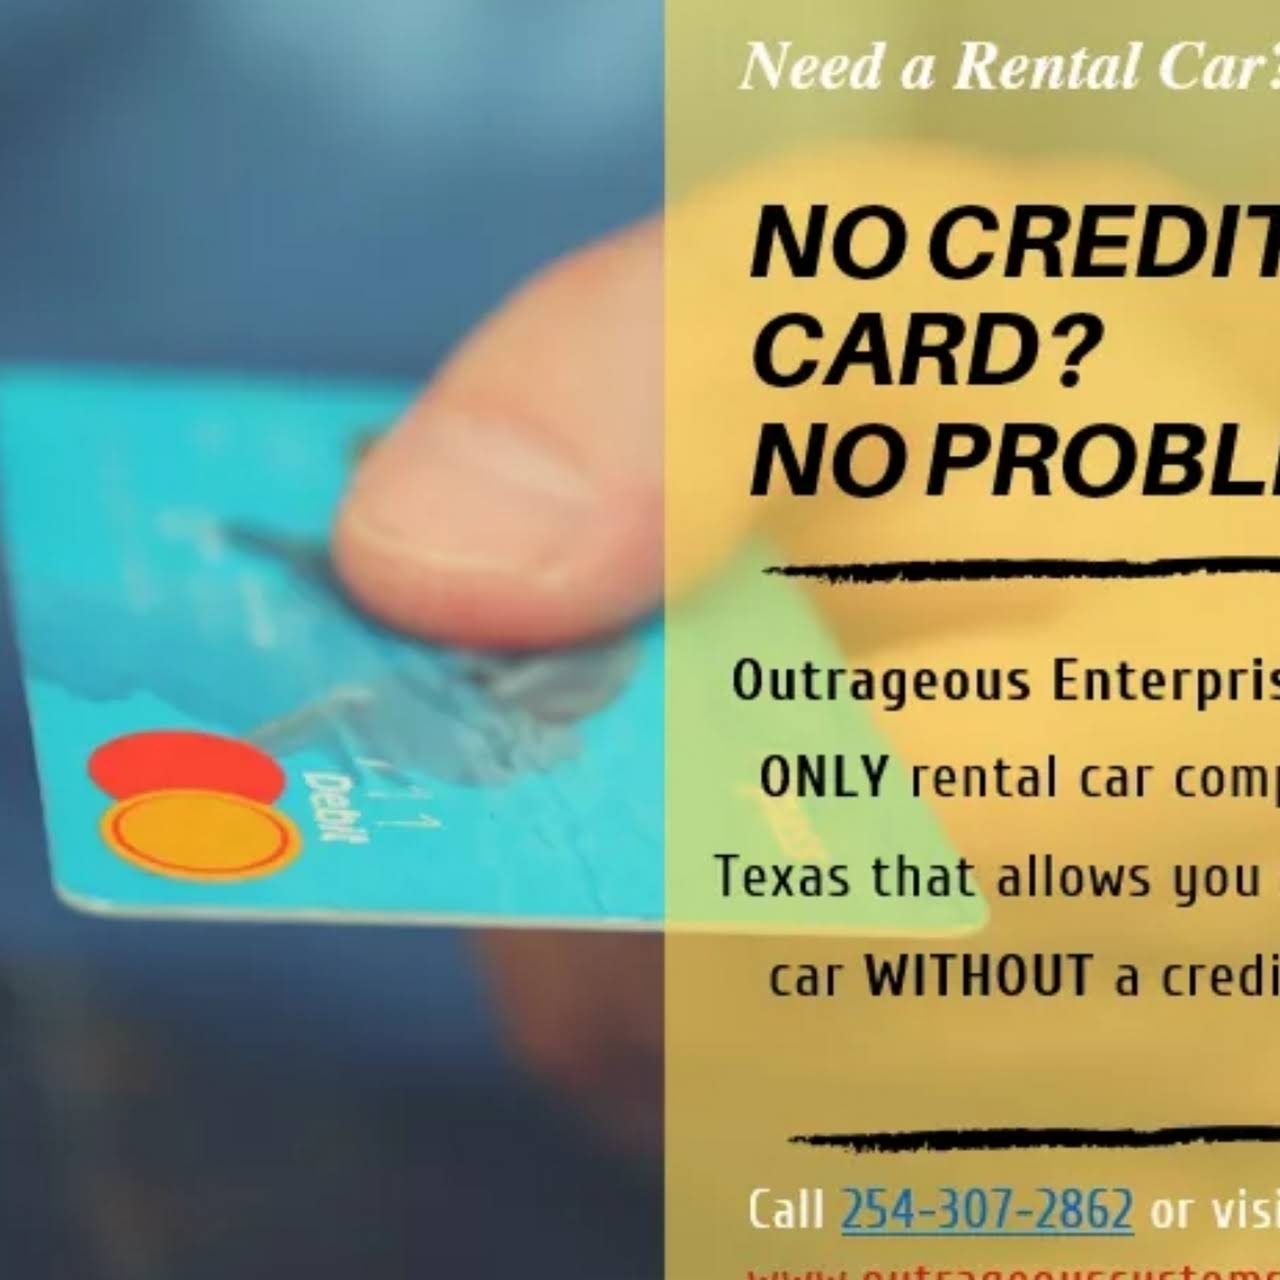 The Rental Show 2020.Outrageous Enterprise Car Rental Agency In Killeen